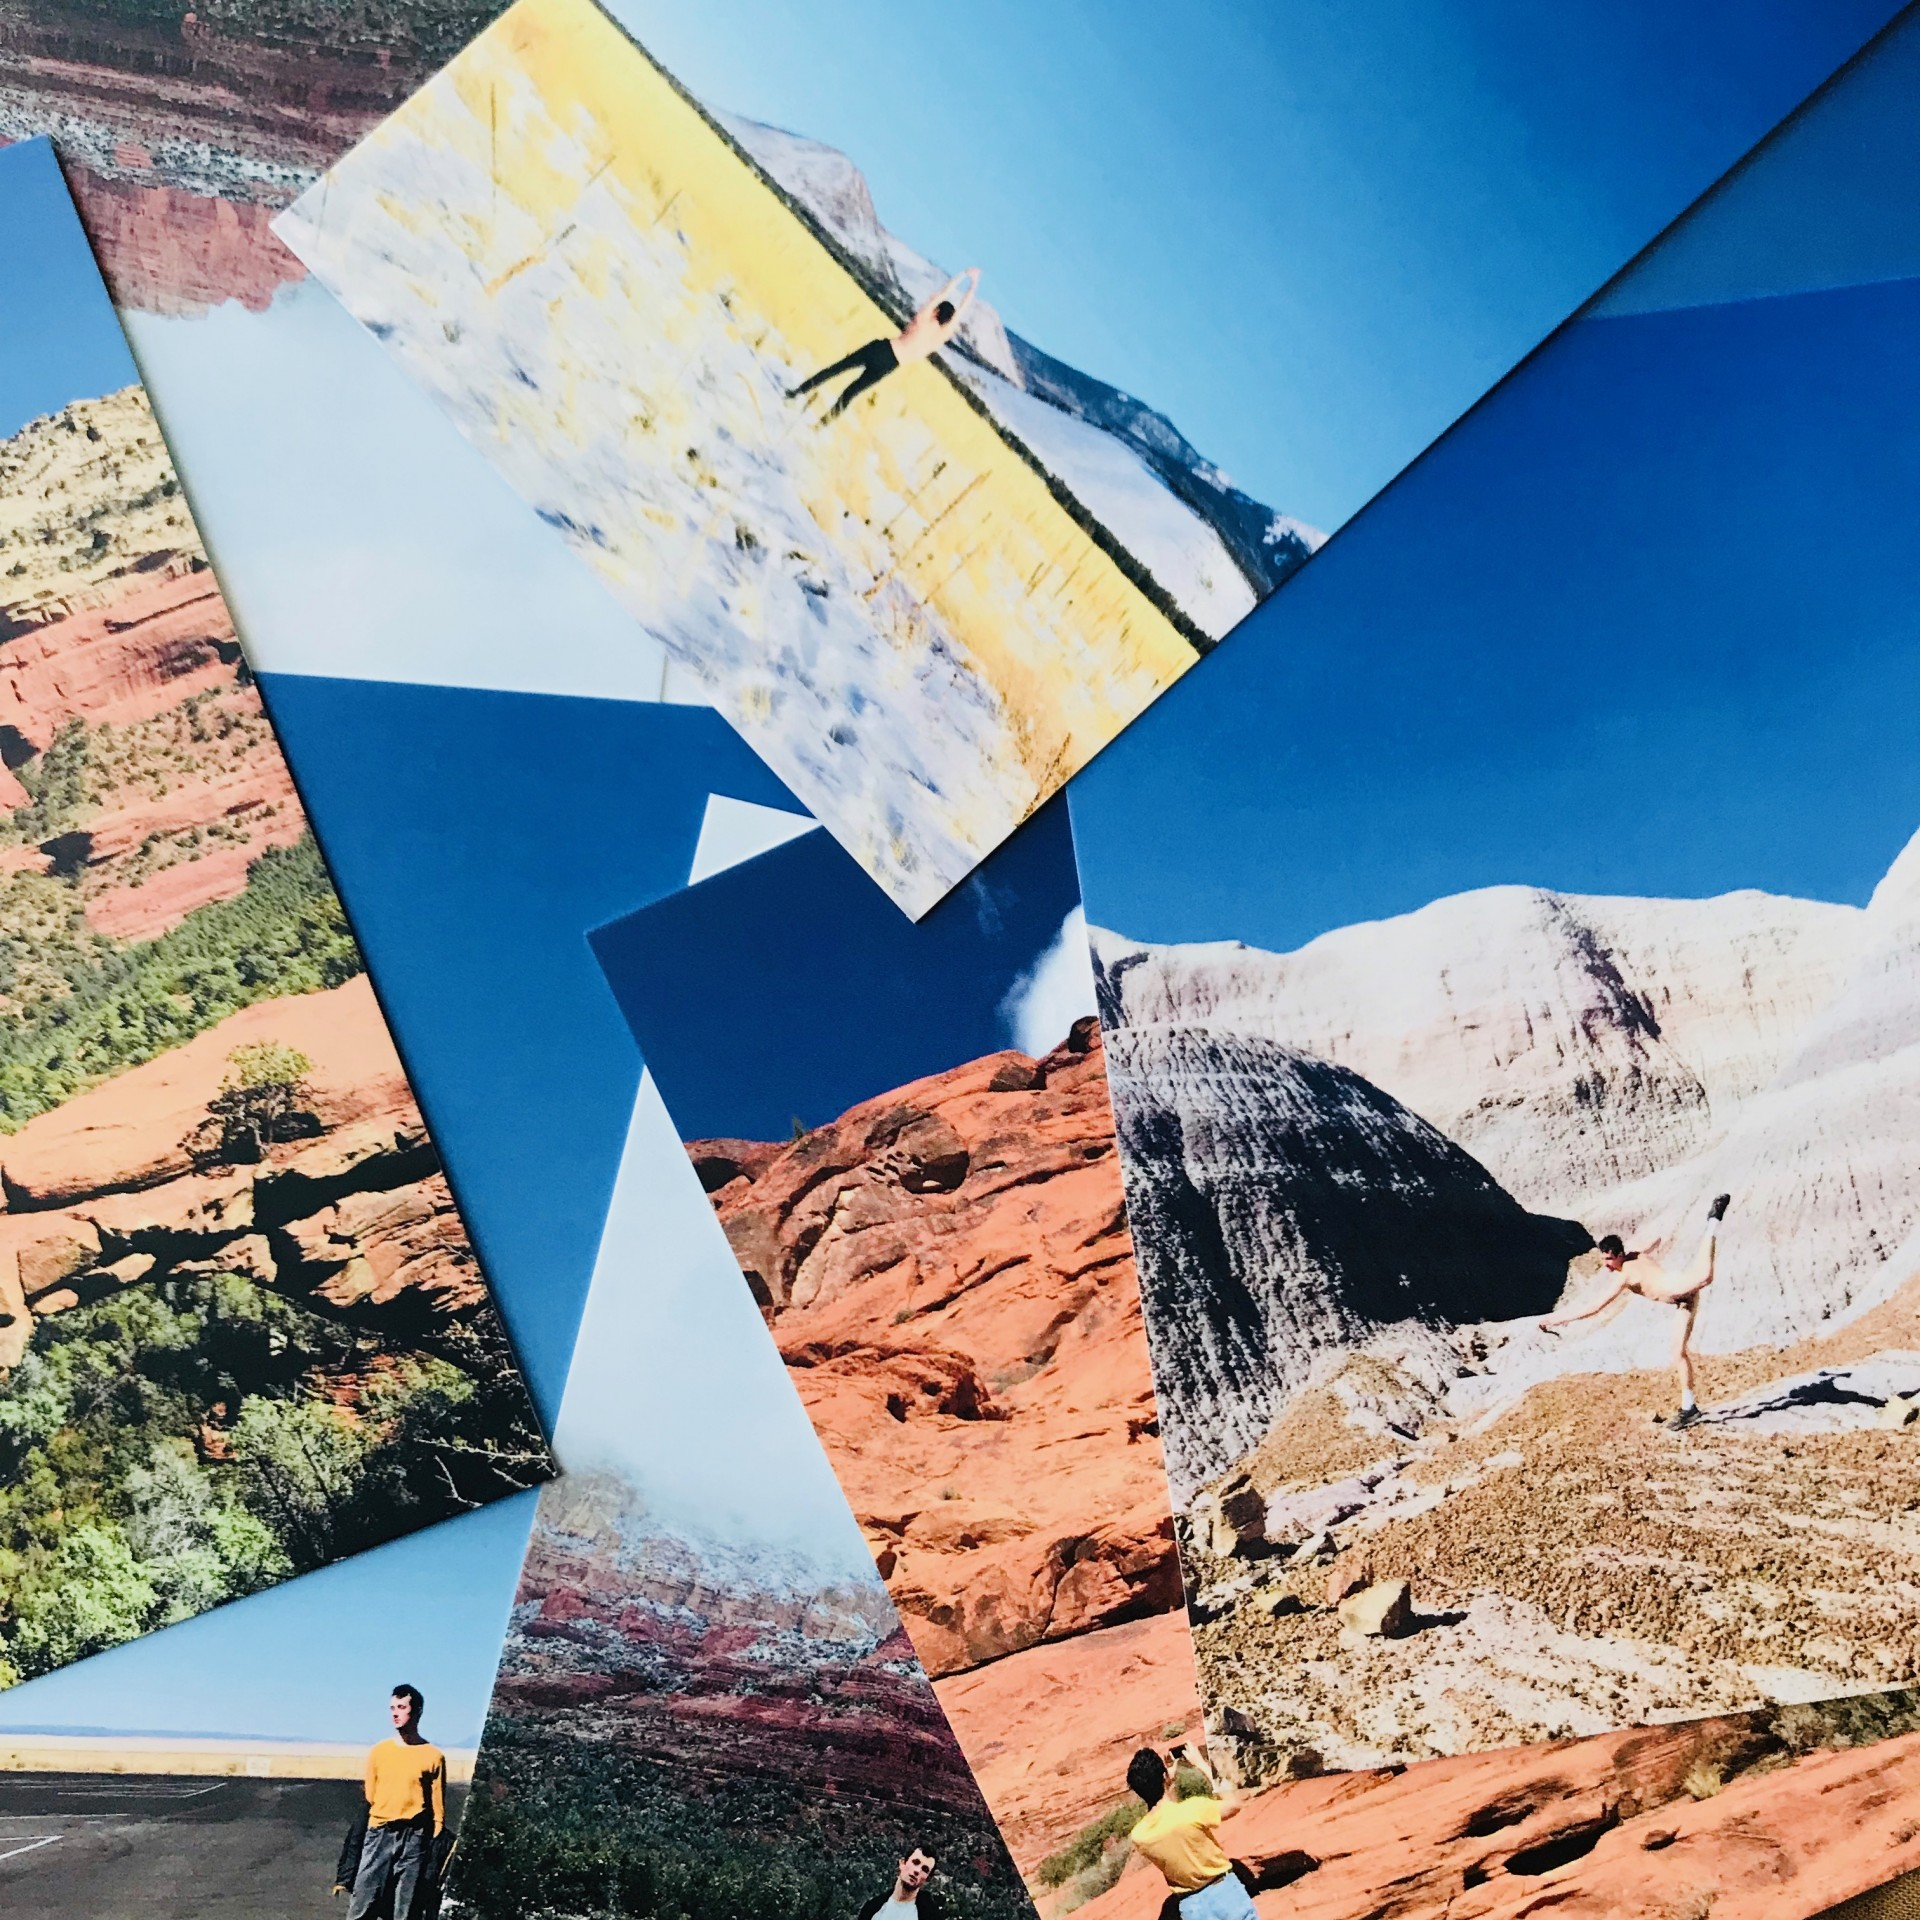 Pile of photographs of male model in American southwestern landscapes.